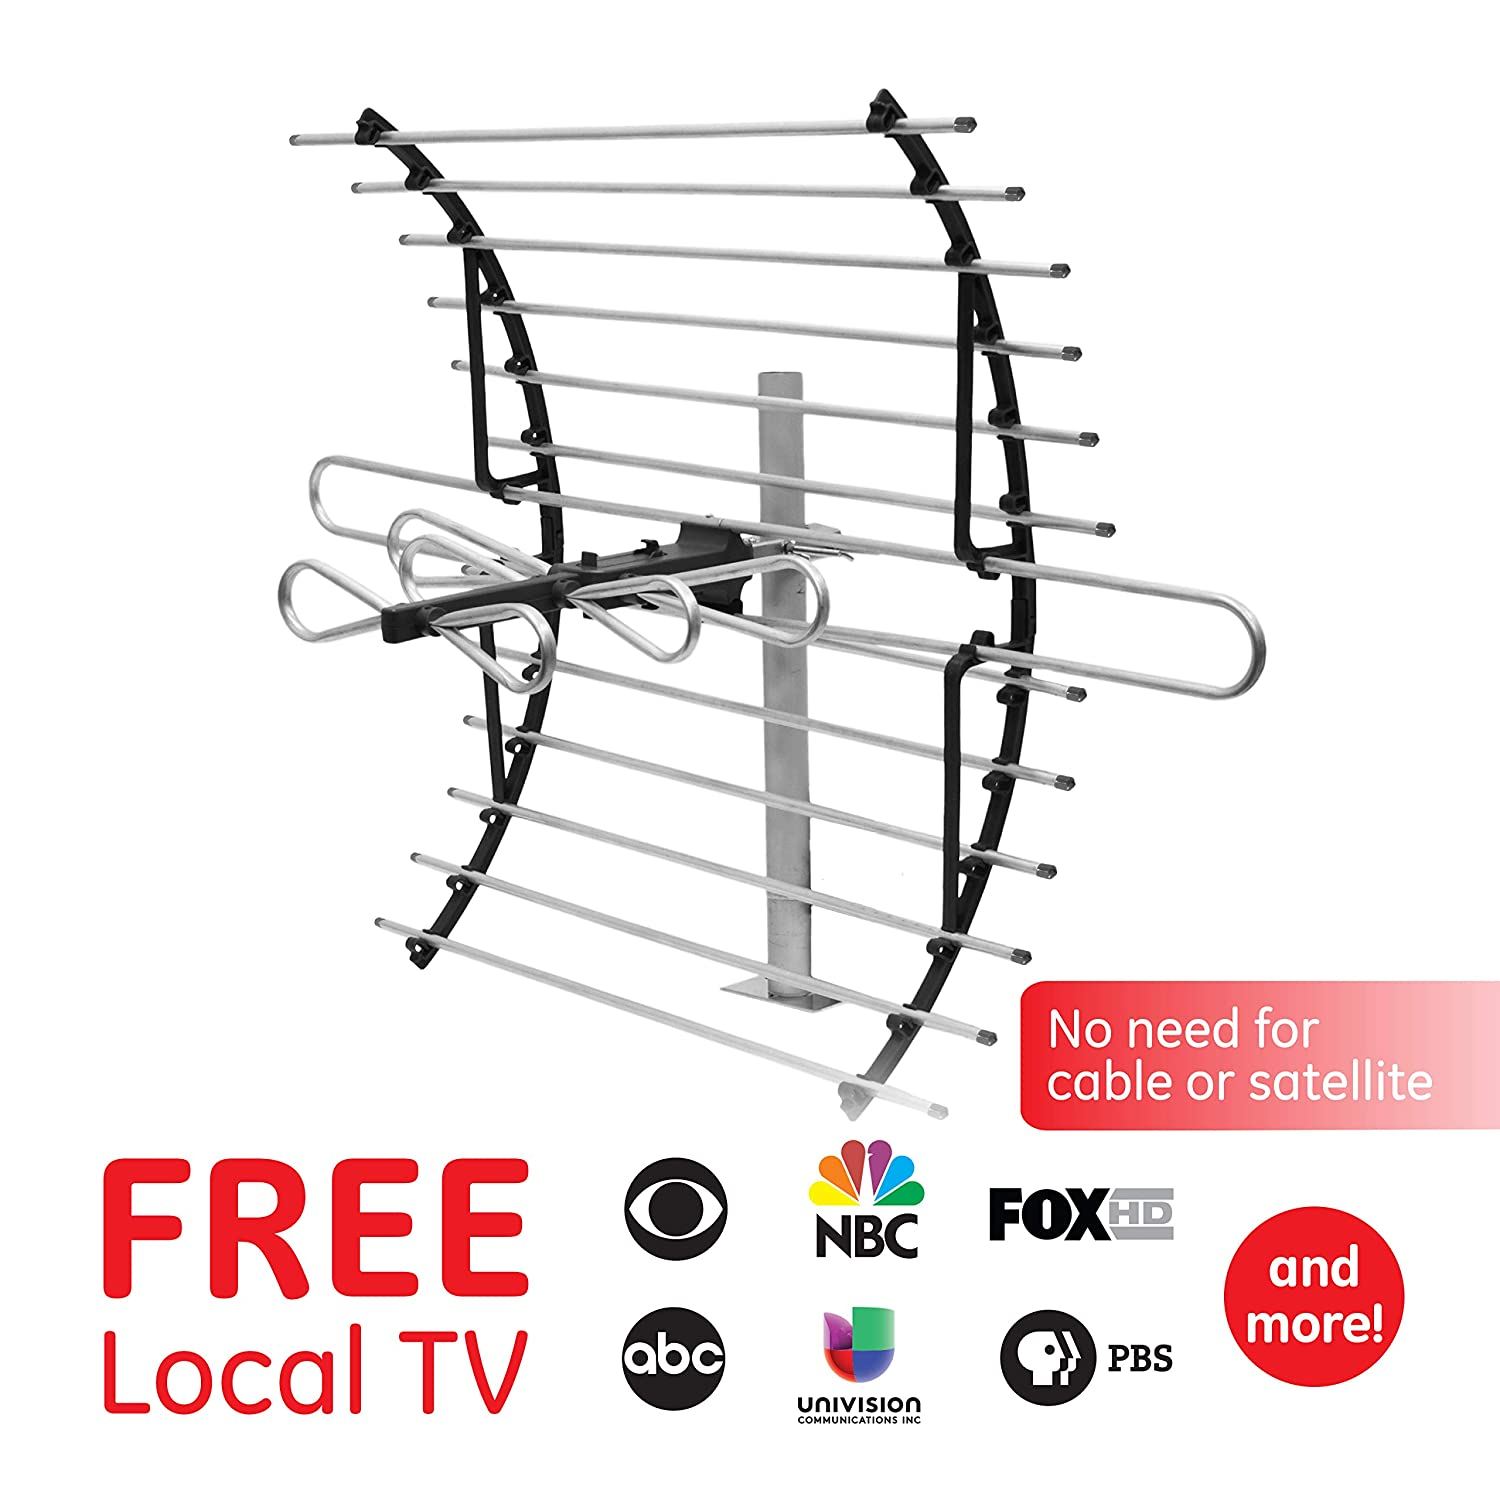 Ge Pro Attic Mount Tv Antenna Long Range Cable Wiring For Internet Home Theater Diy Chatroom Directional Digital Hdtv 4k 1080p Vhf Uhf Compact Design Mounting Pole Included 33692 Audio